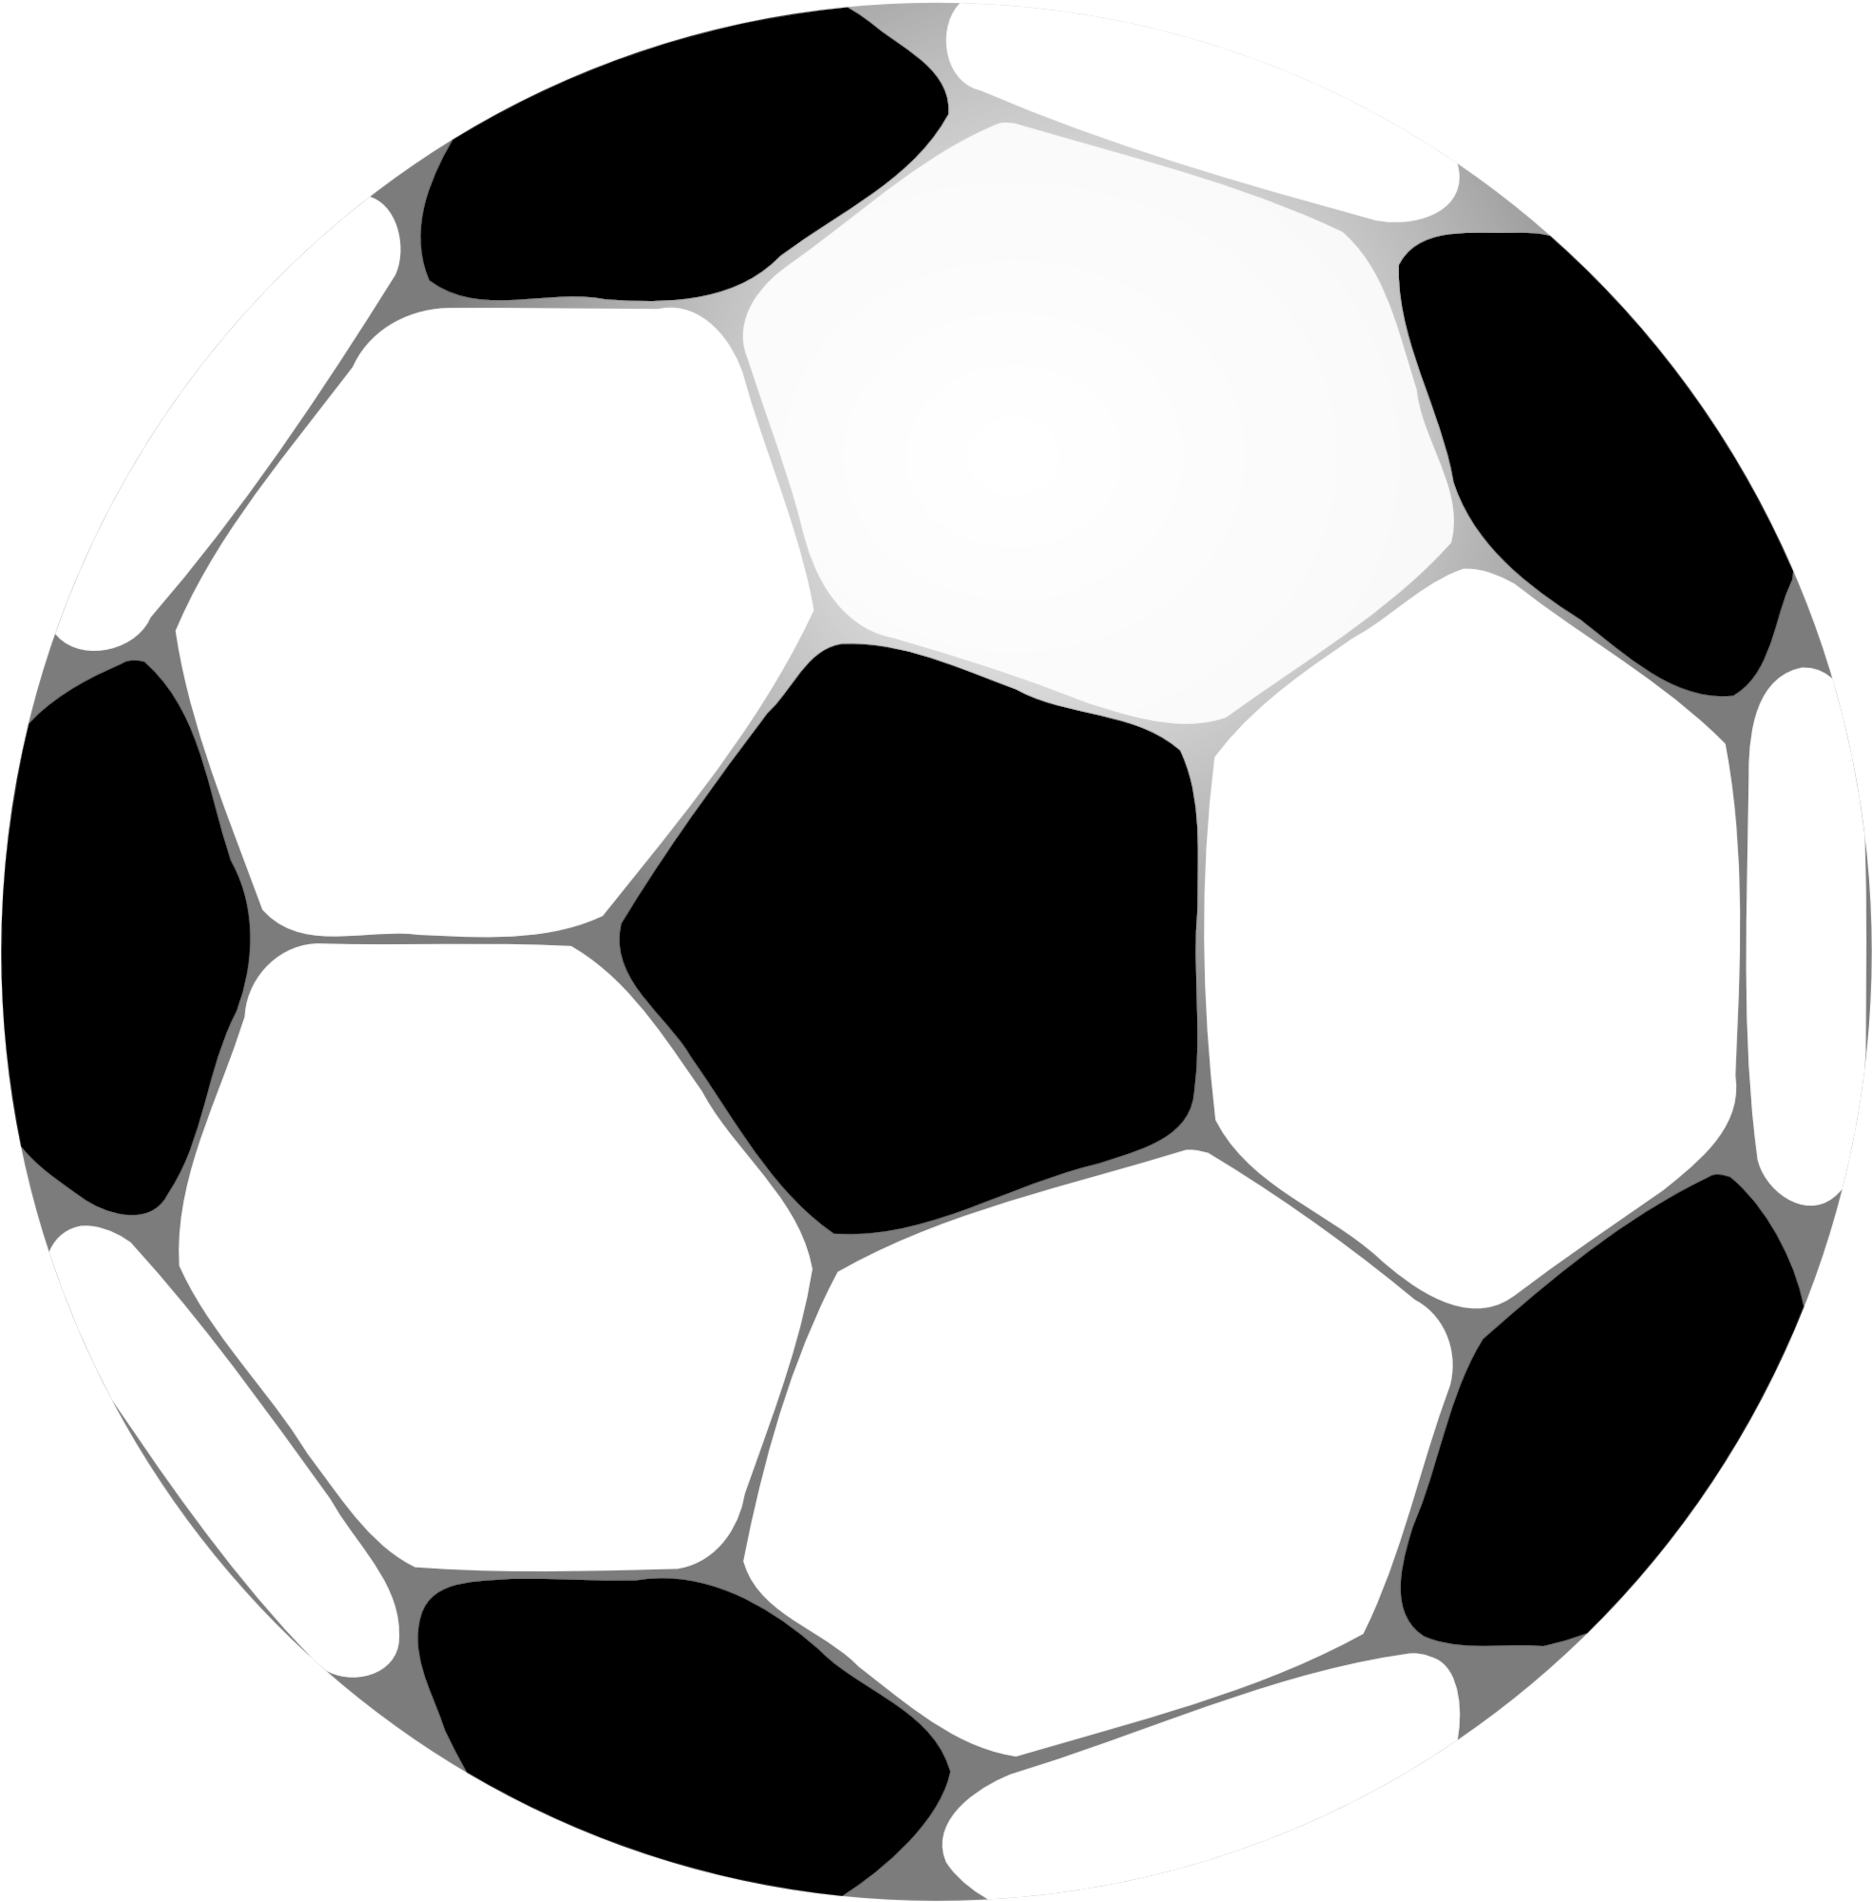 Football images hd clipart png library stock HD A Soccer Ball Clipart Free To Use Clip Art Resource - Football ... png library stock